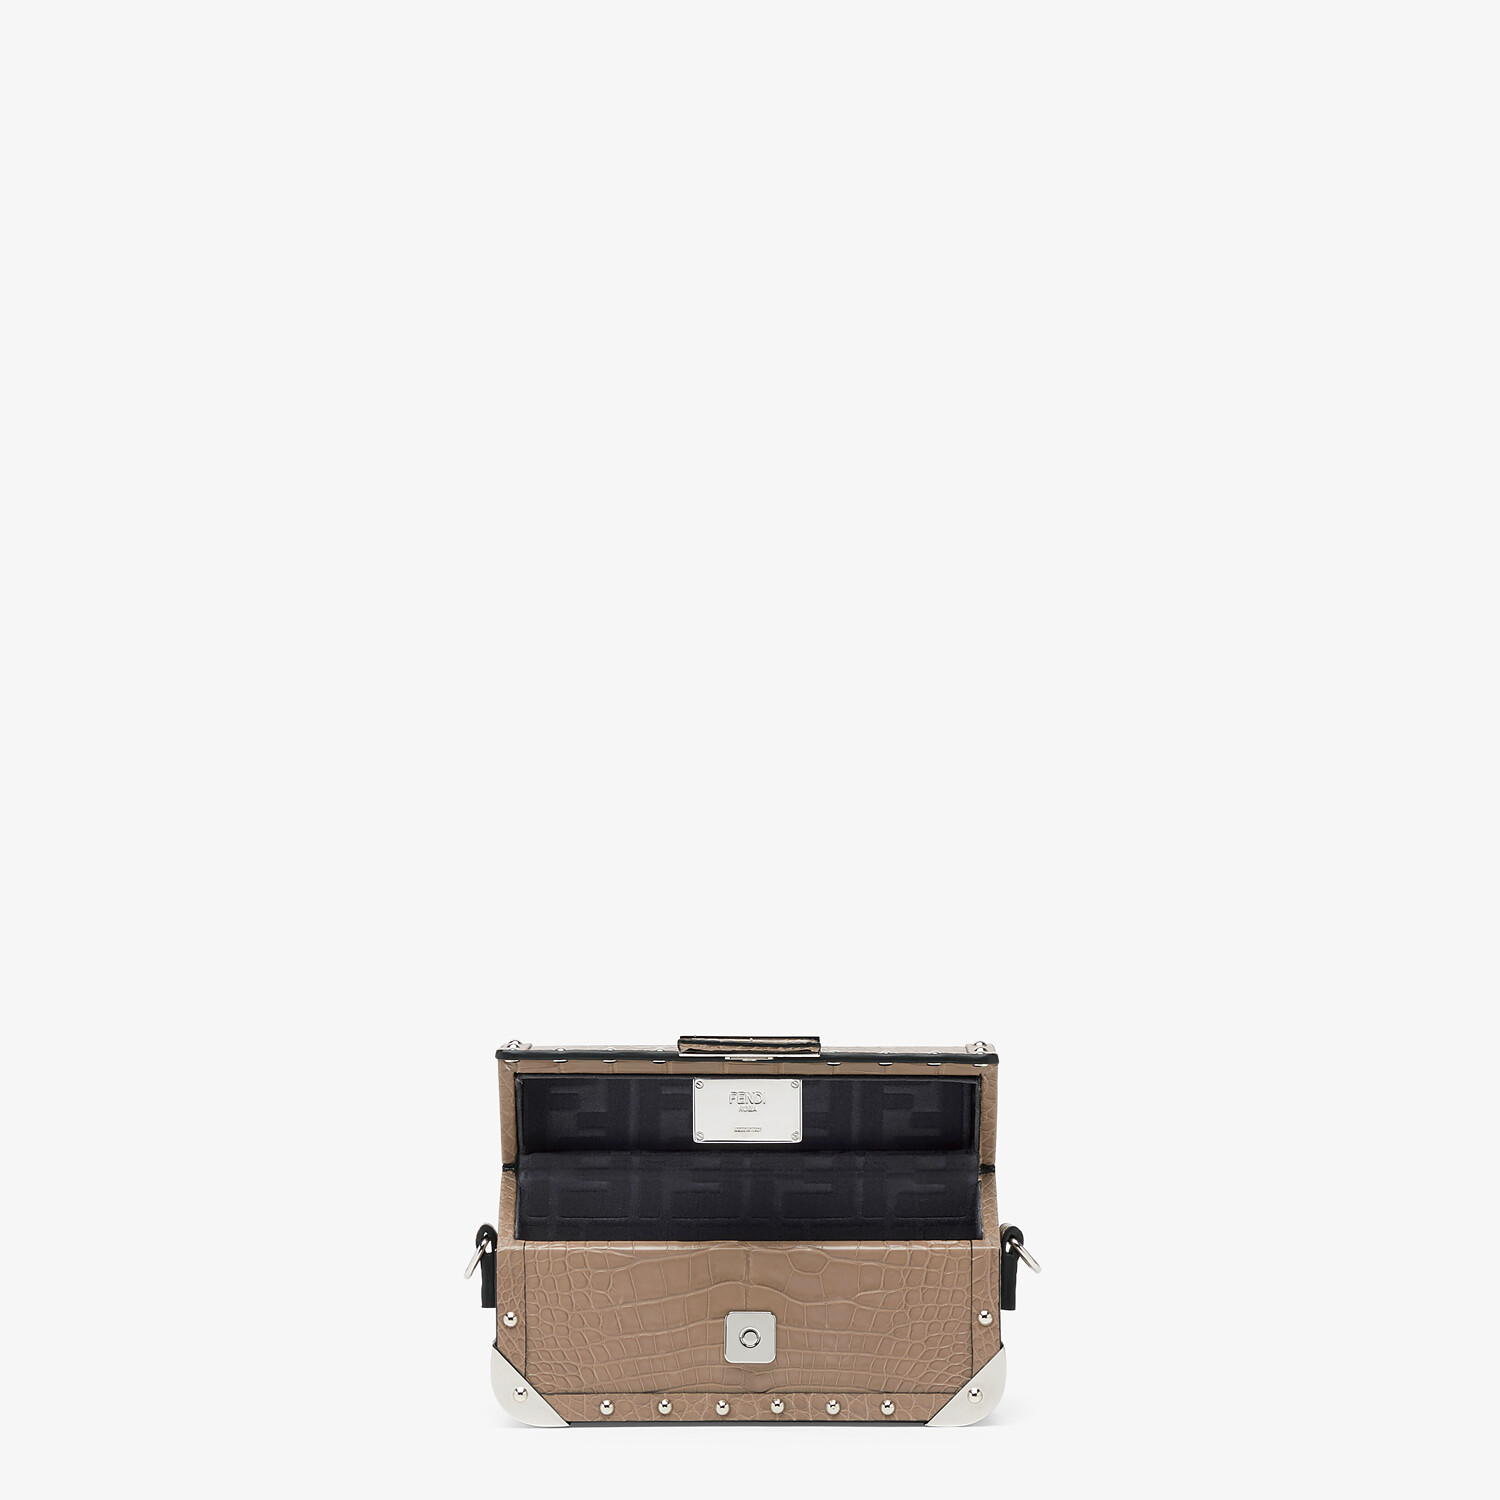 FENDI BAGUETTE TRUNK MINI - Beige alligator leather bag - view 4 detail